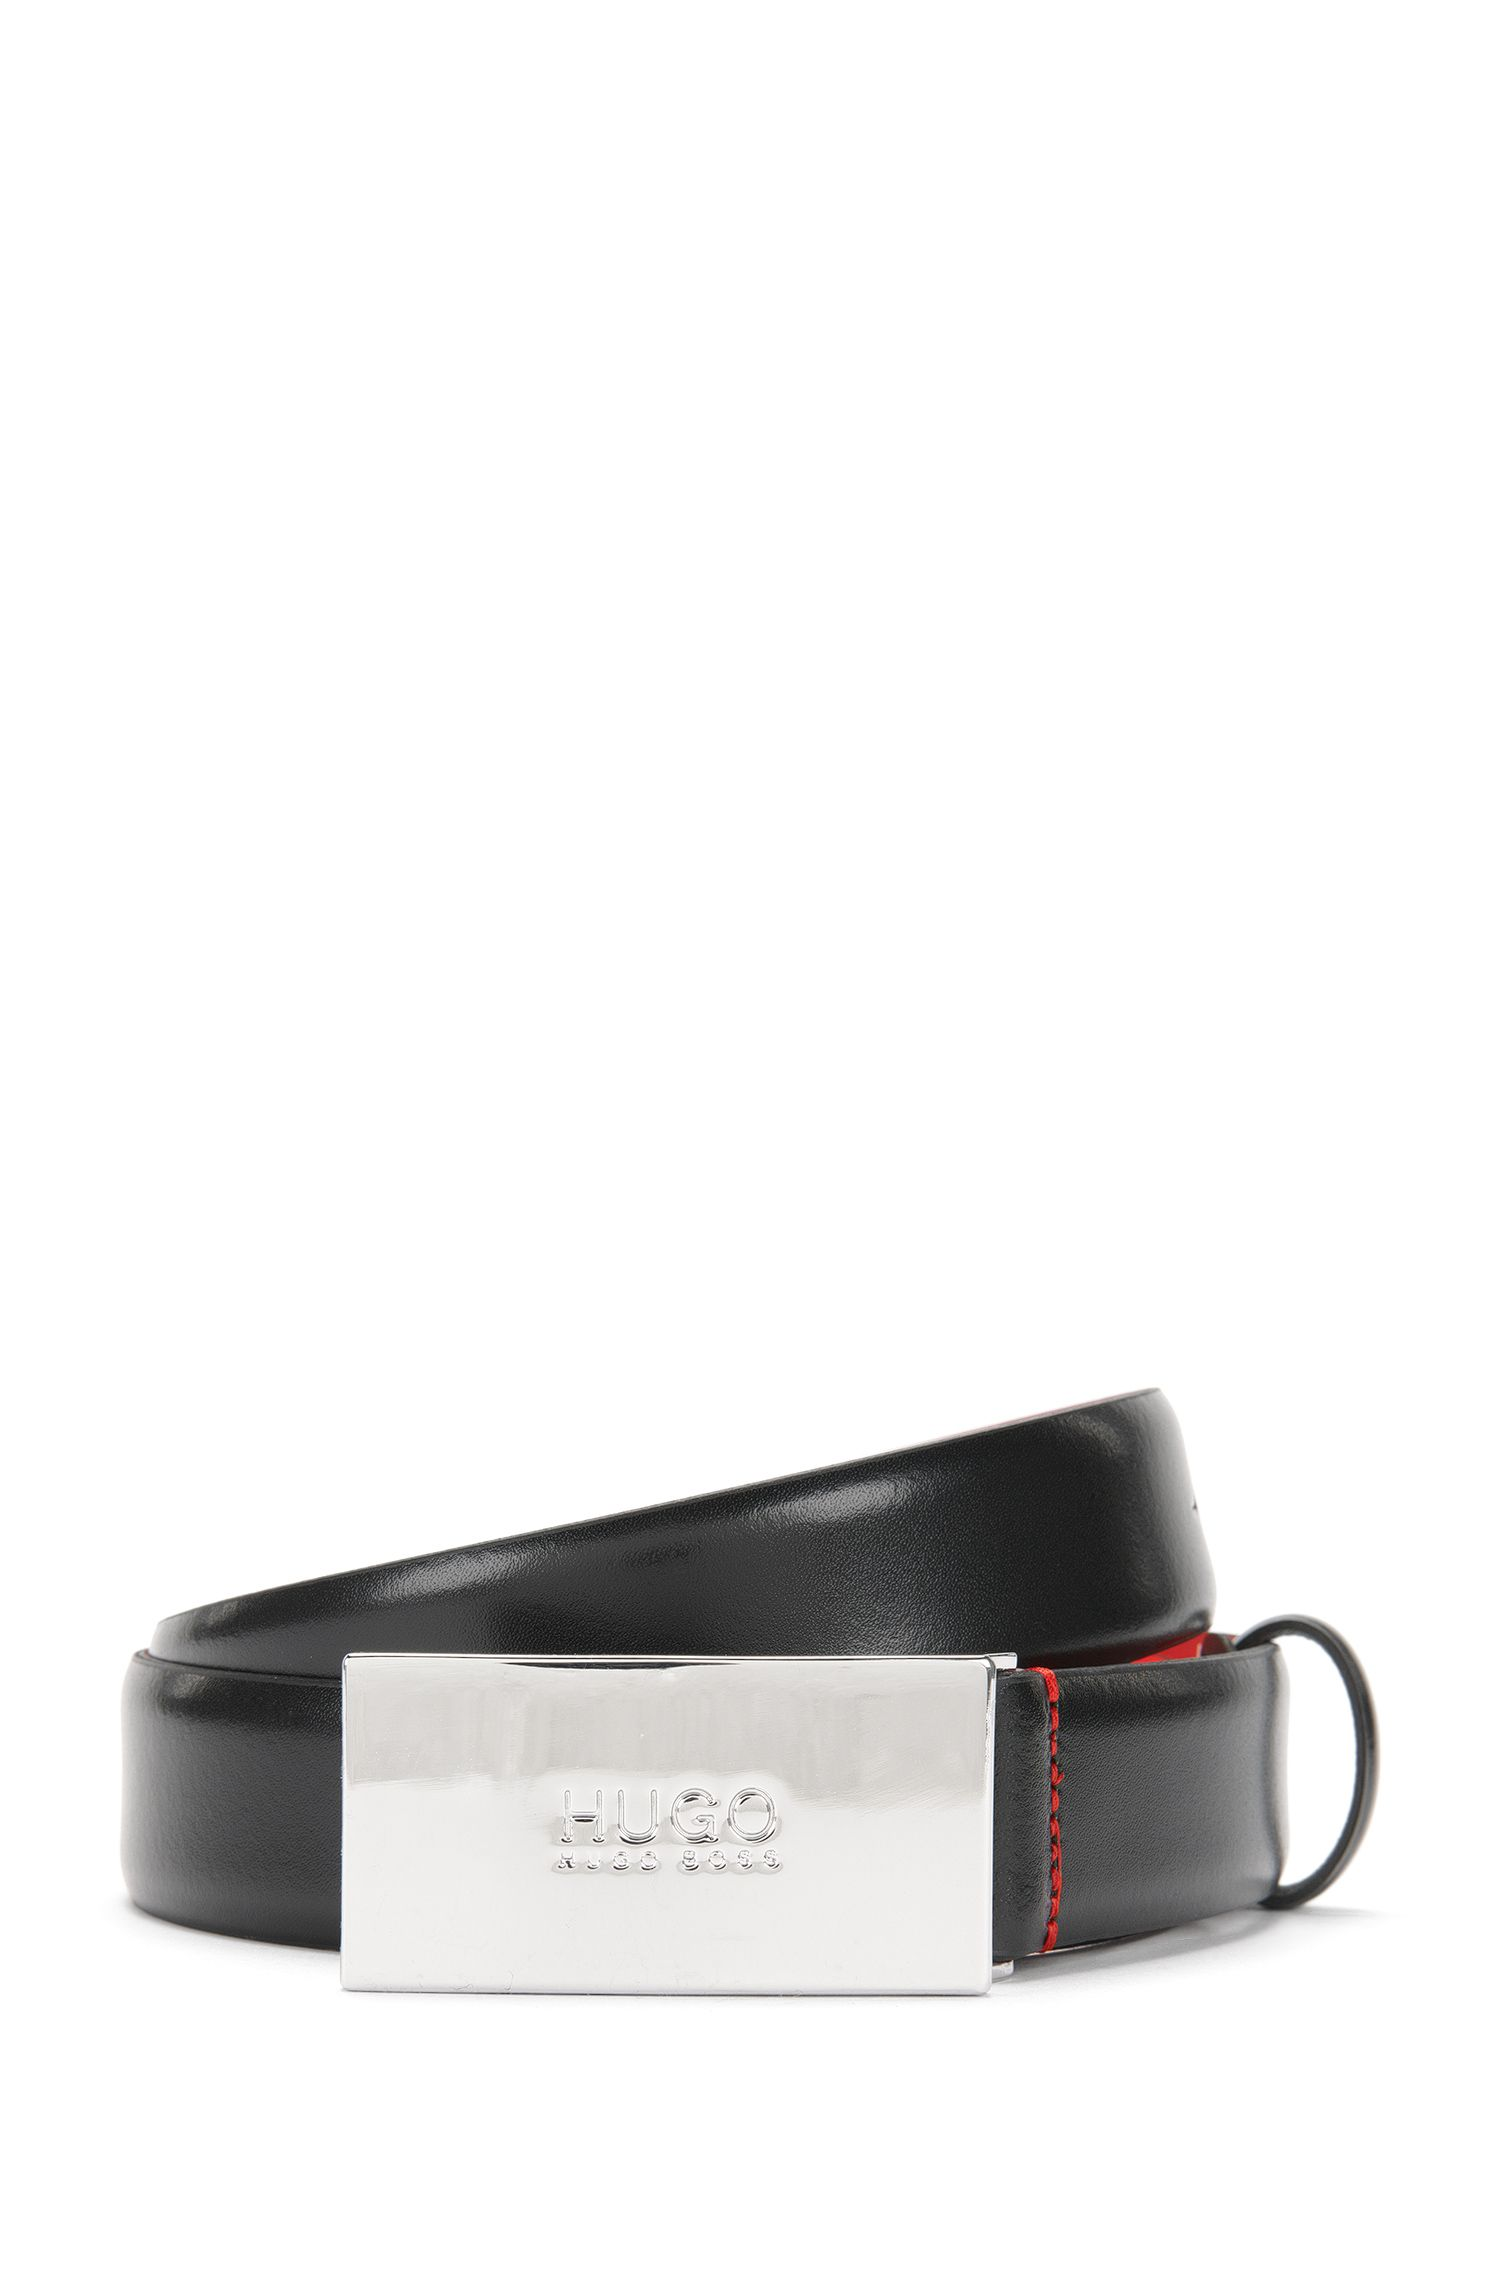 Pin Buckle Leather Belt | Baldwin N